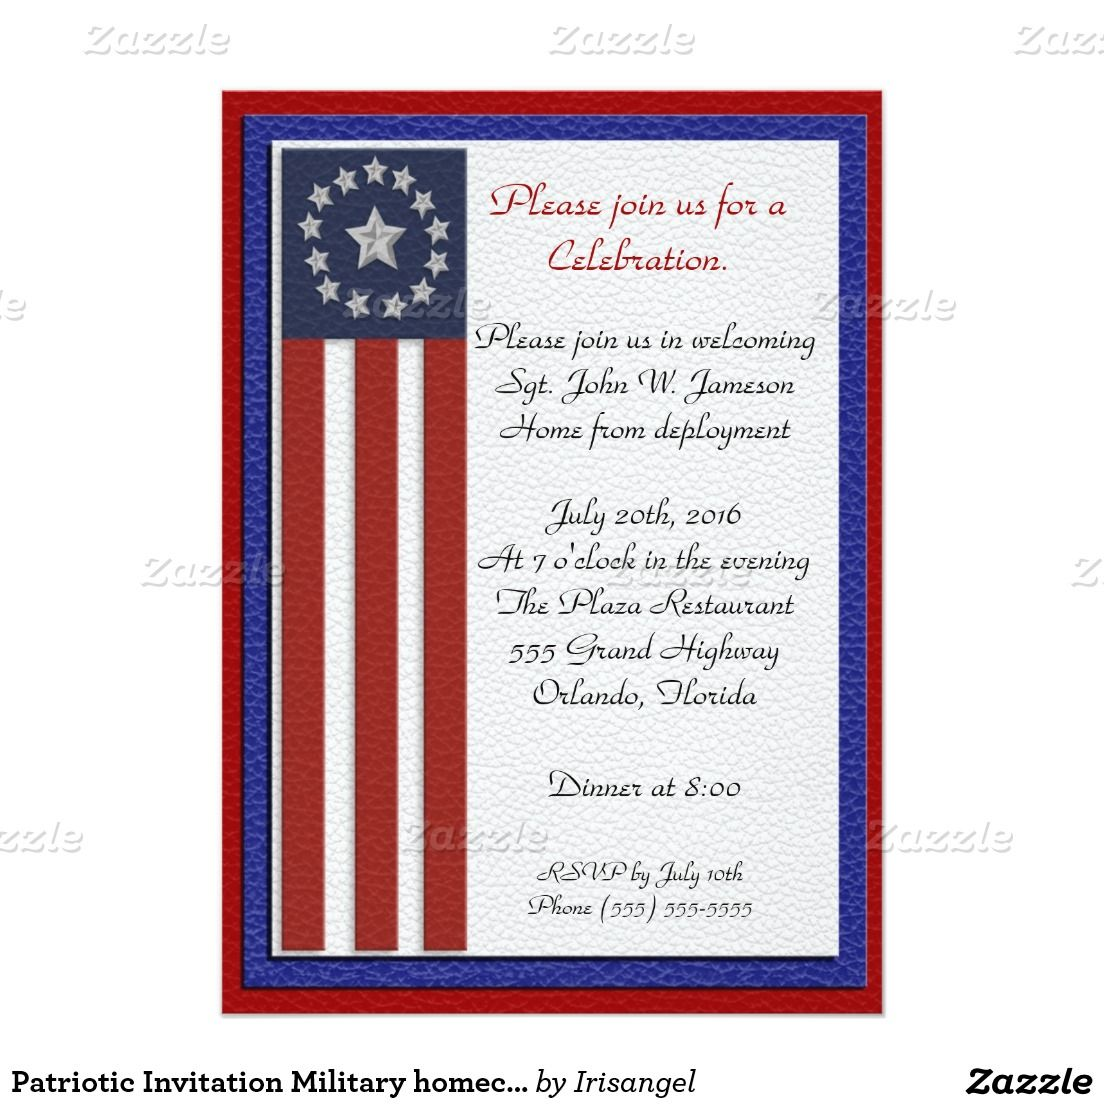 patriotic invitation military homecoming party military retirement